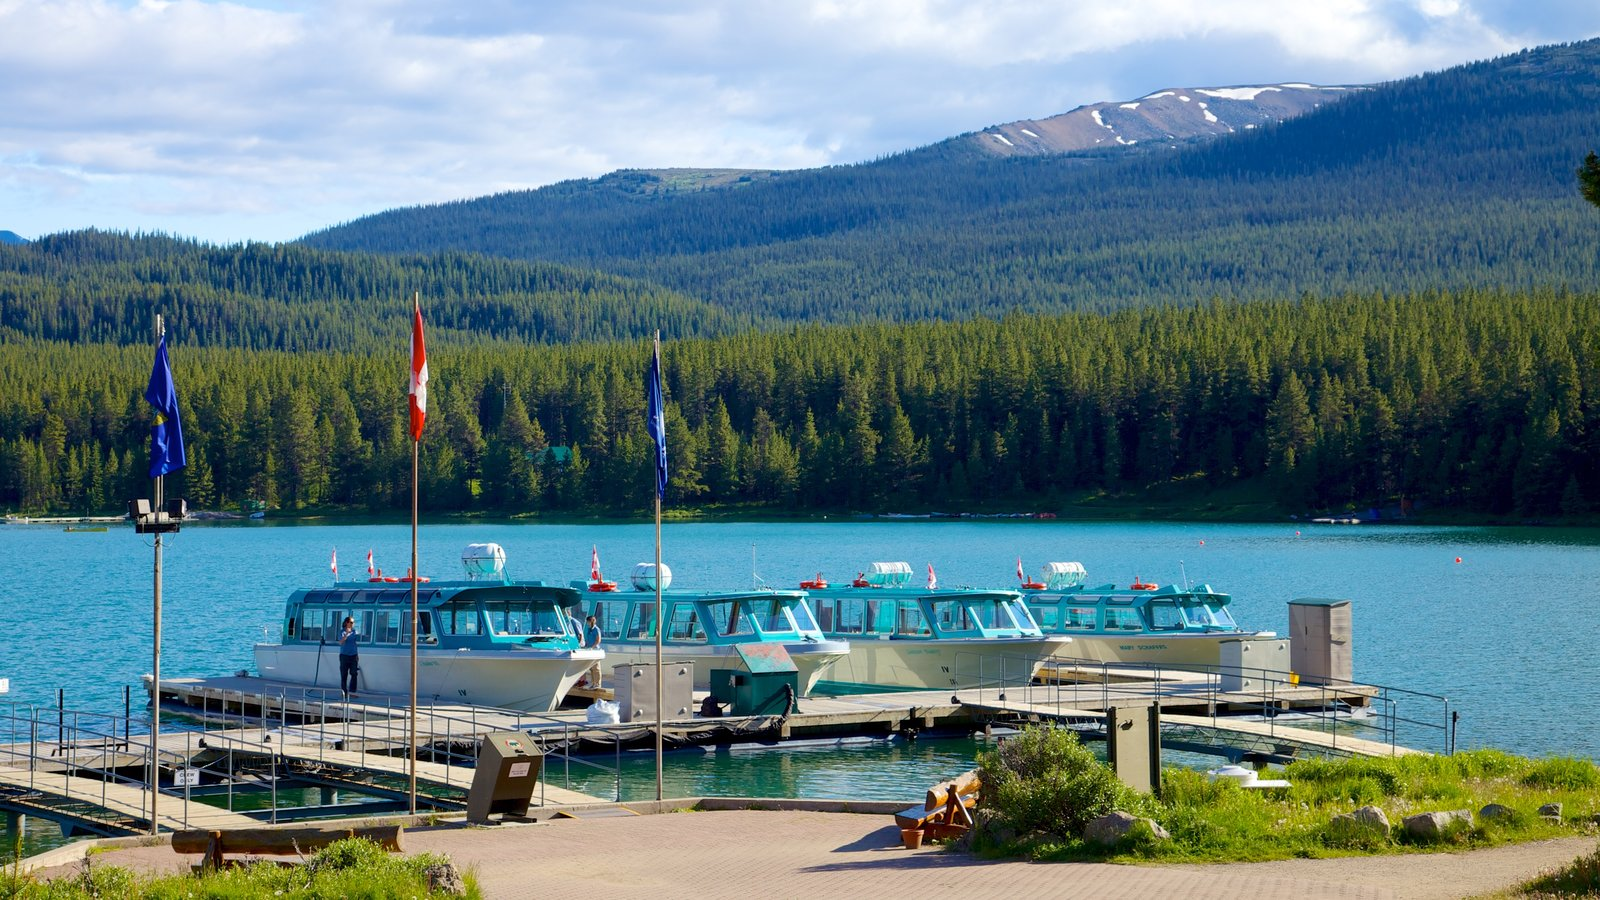 Maligne Lake featuring landscape views, a lake or waterhole and forest scenes